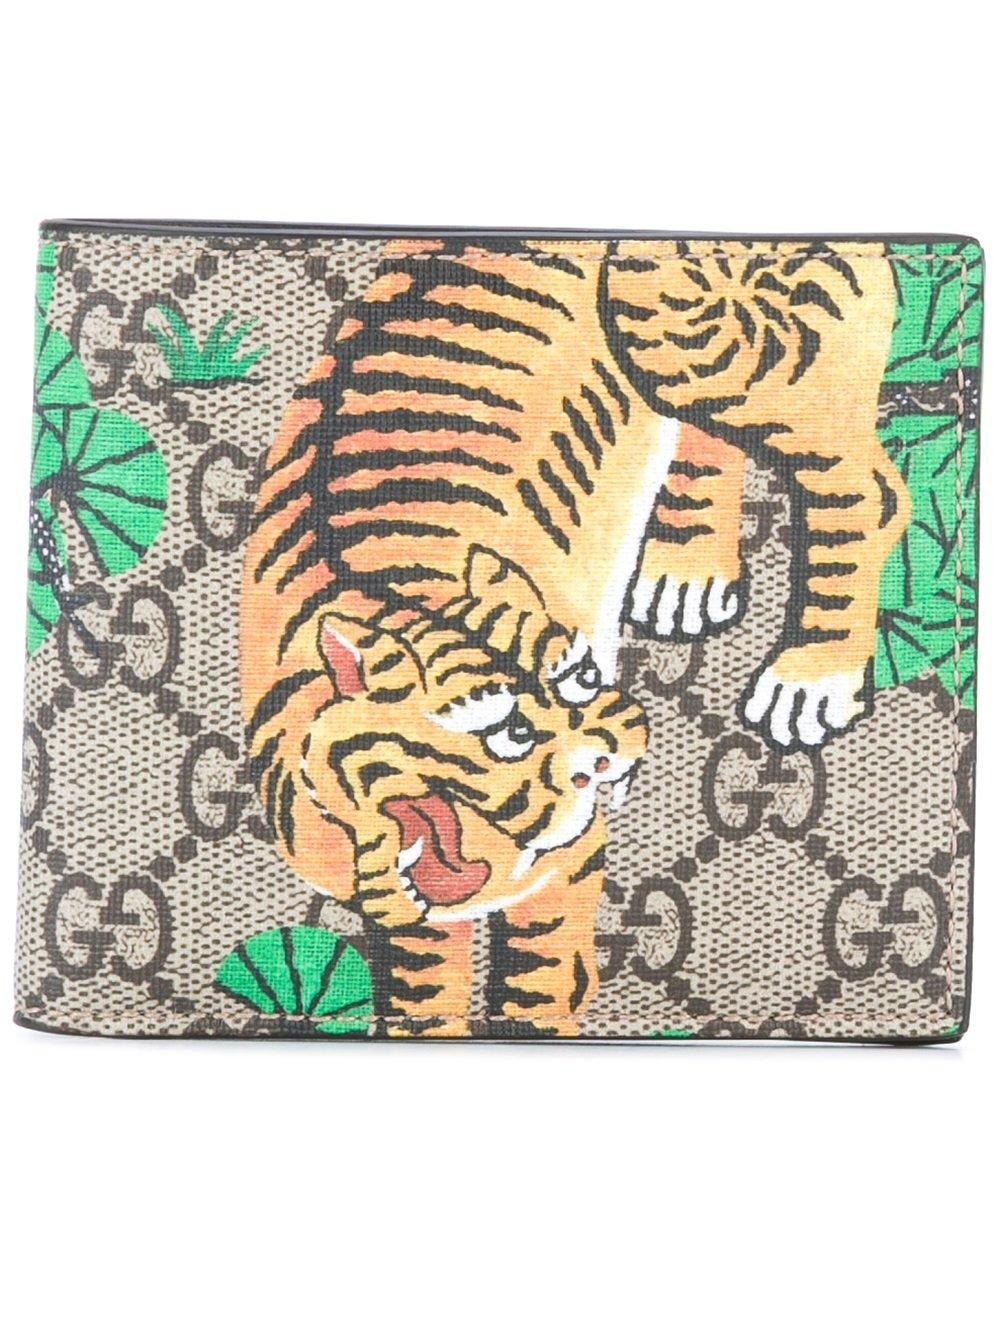 9f12c8480f2 Gucci Gg Supreme Bengal Print Wallet in Brown for Men - Lyst